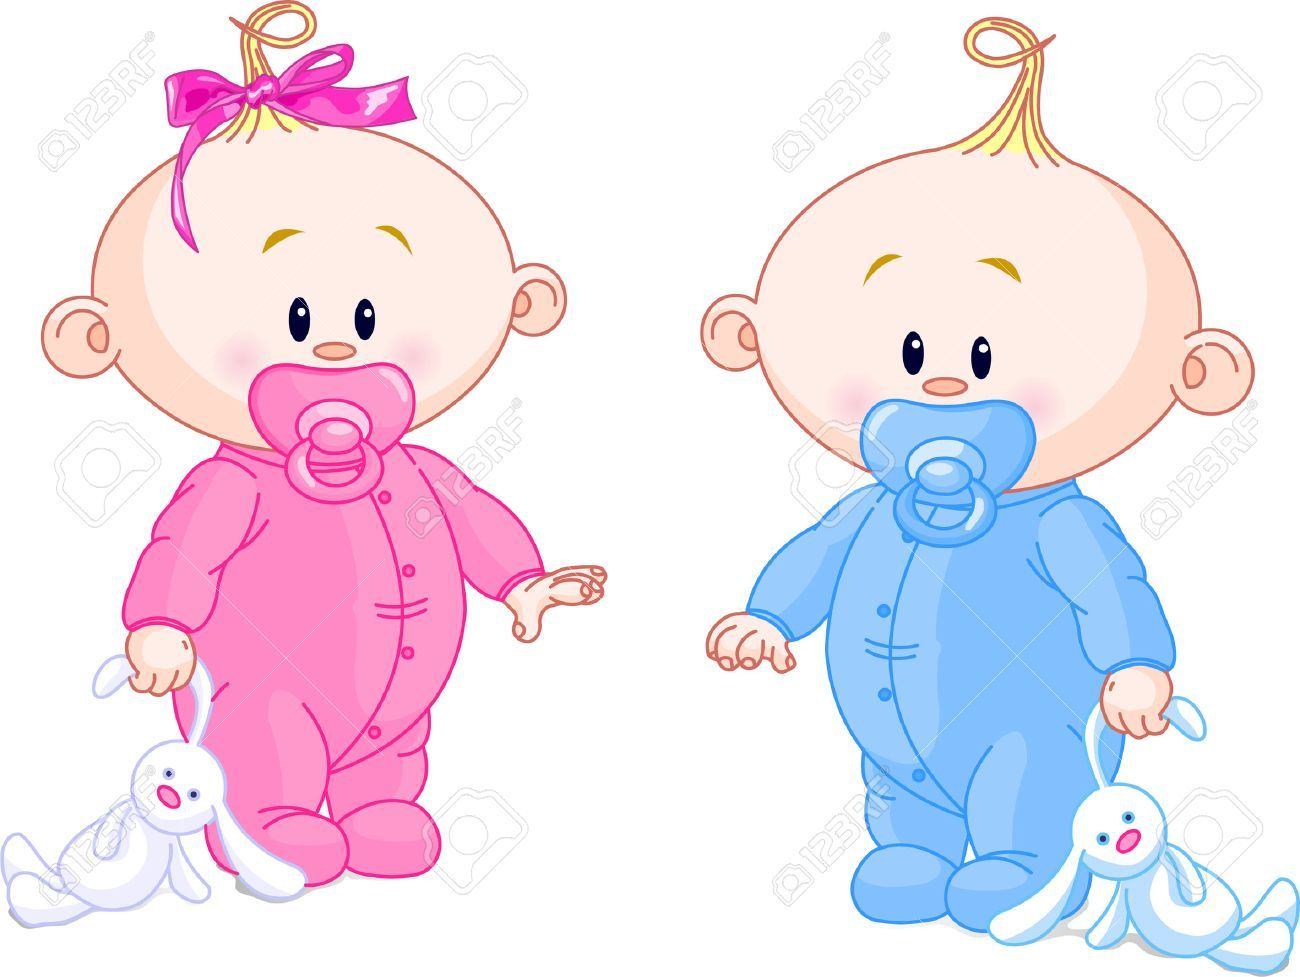 Baby boy and girl clipart 6 » Clipart Portal.